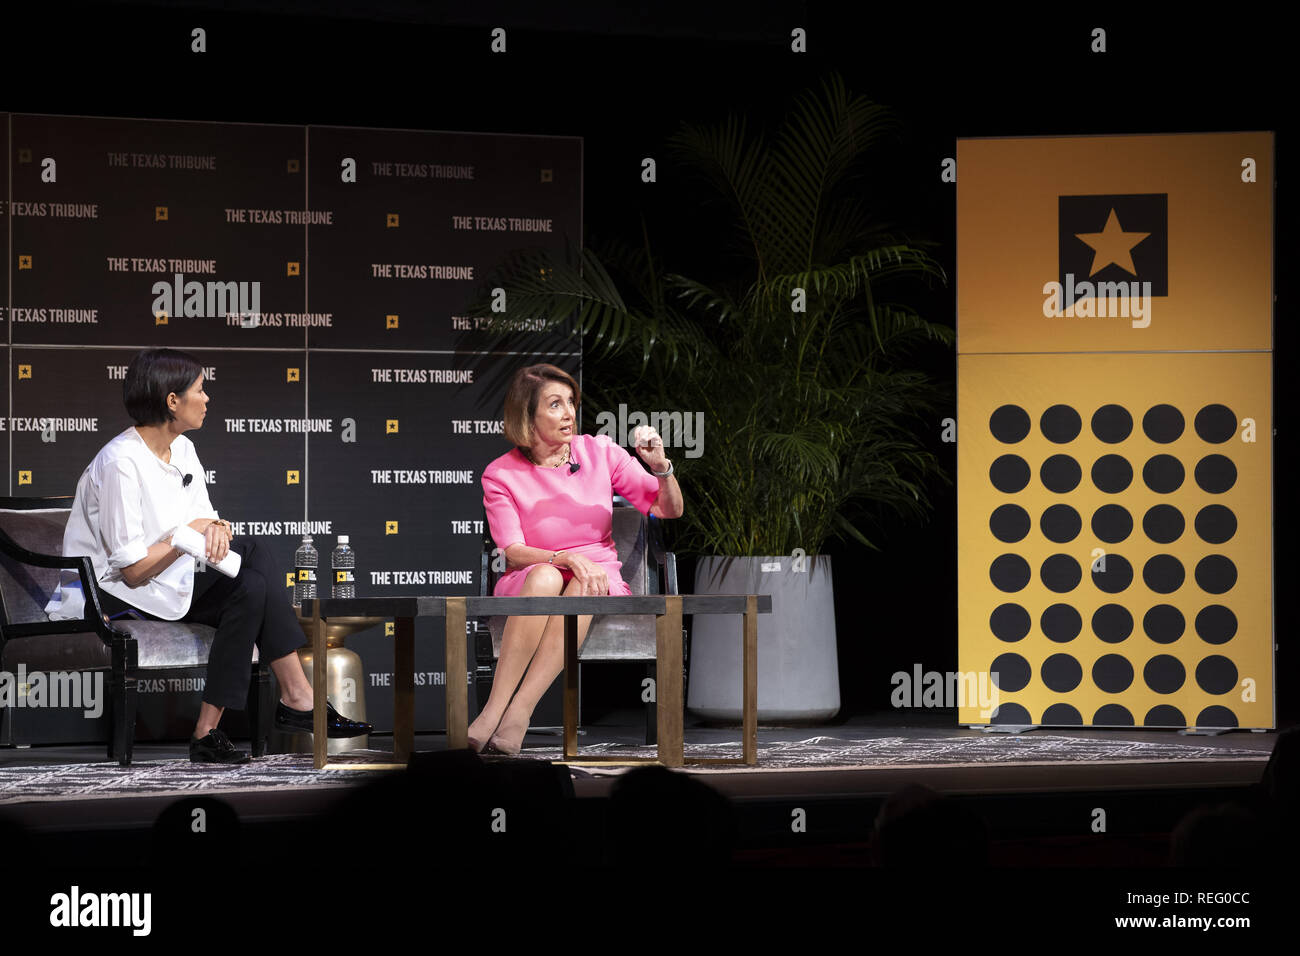 Austin, Texas, USA. 29th Sep, 2018. House Democratic leader Nancy Pelosi appears as a featured guest with interviewer Alex Wagner at the 2018 Texas Tribune Festival on Sept. 29, 2018. Pelosi has since been elected Speaker of the U.S. House of Representatives Credit: Bob Daemmrich/ZUMA Wire/Alamy Live News - Stock Image